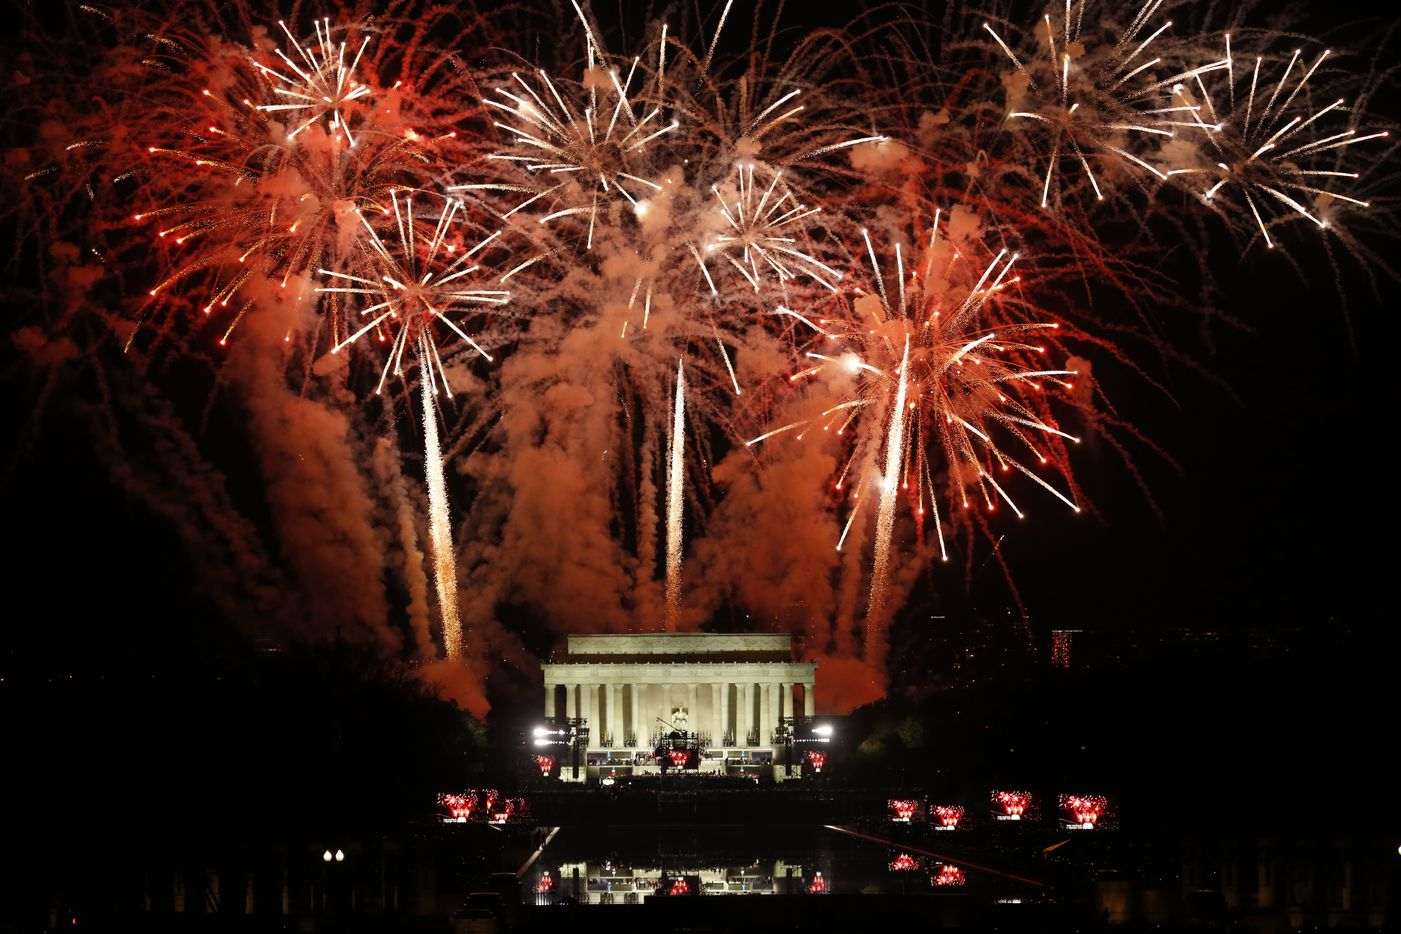 Fireworks explode over the Lincoln Monument in Washington, D.C., after a public concert and appearance by President-elect Trump on Thursday, Jan. 19, 2017.